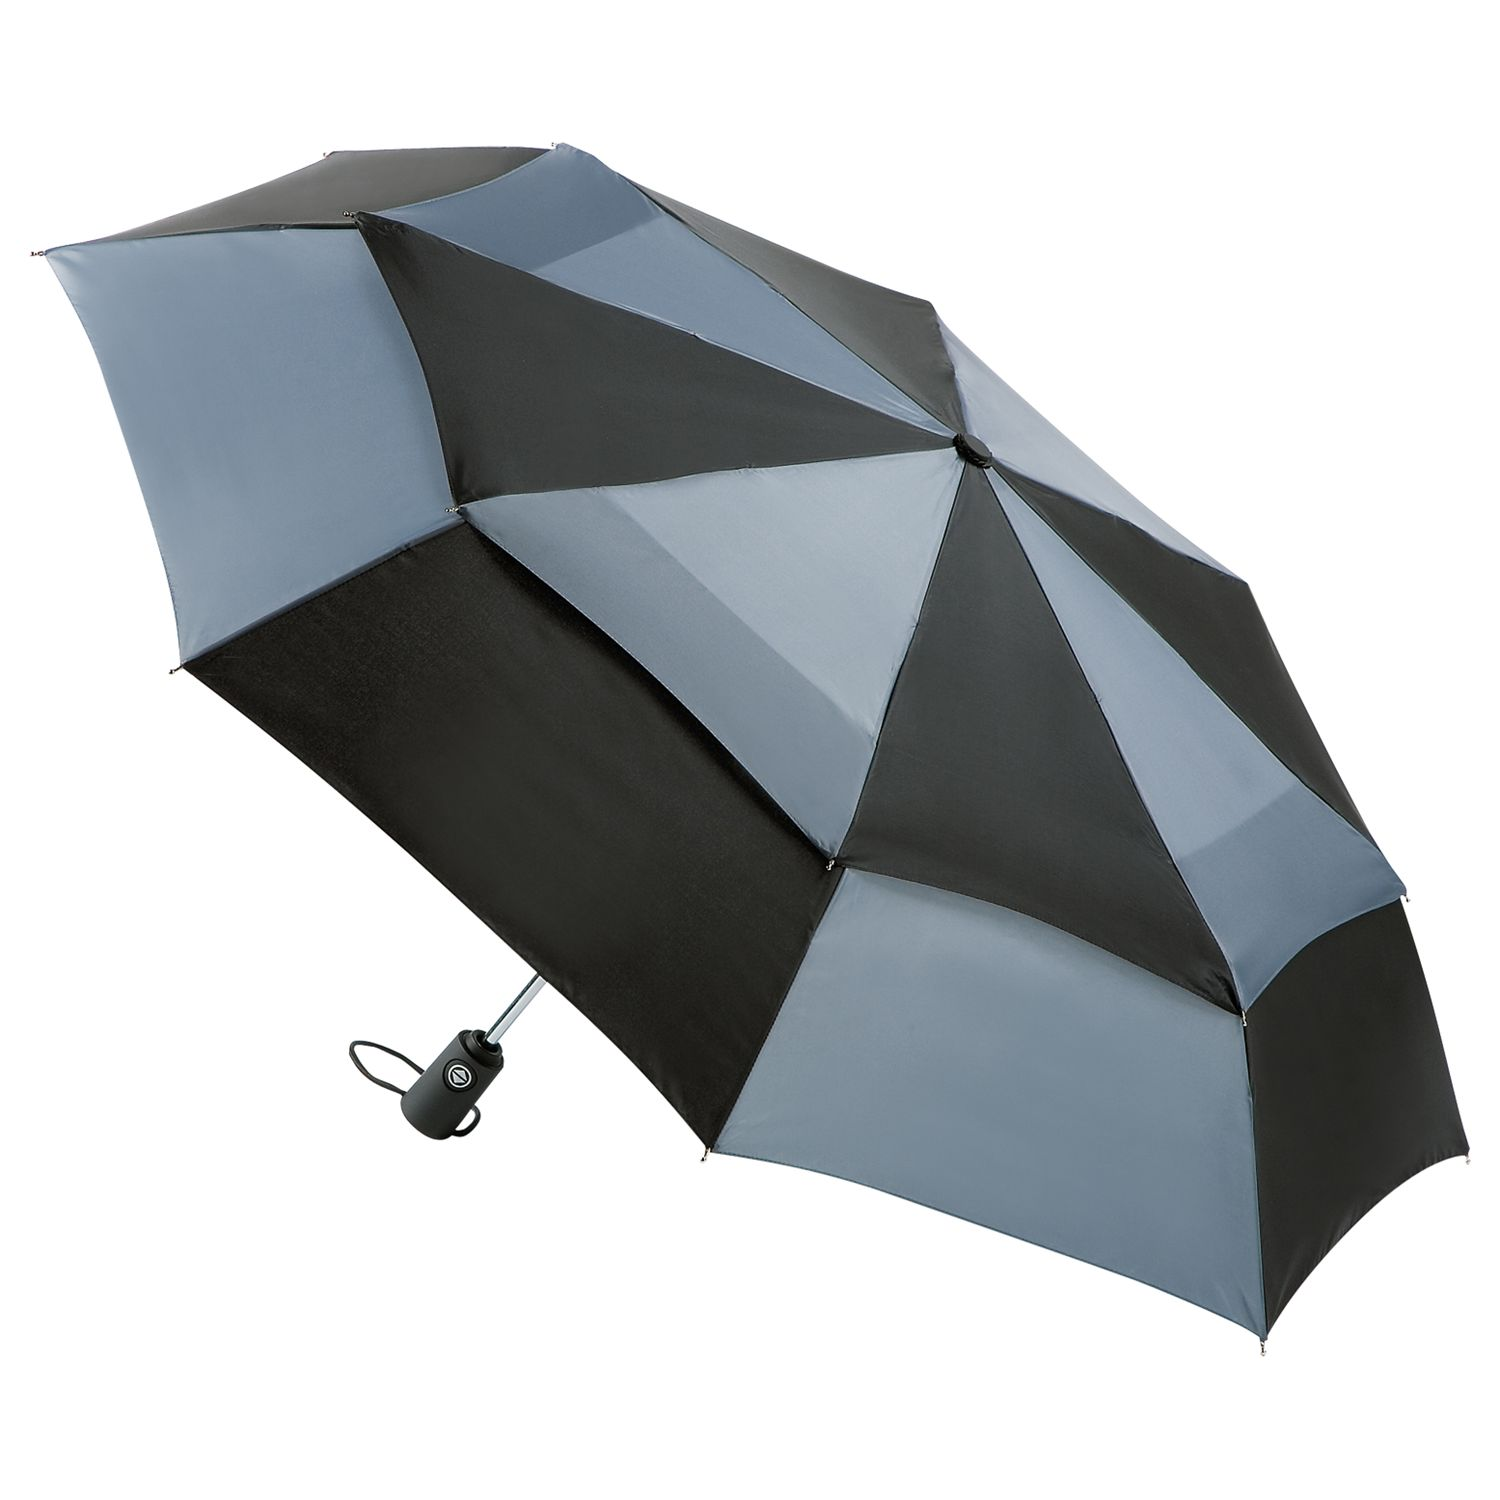 Totes totes Wonderlight Auto Double Canopy Umbrella, Black/Grey